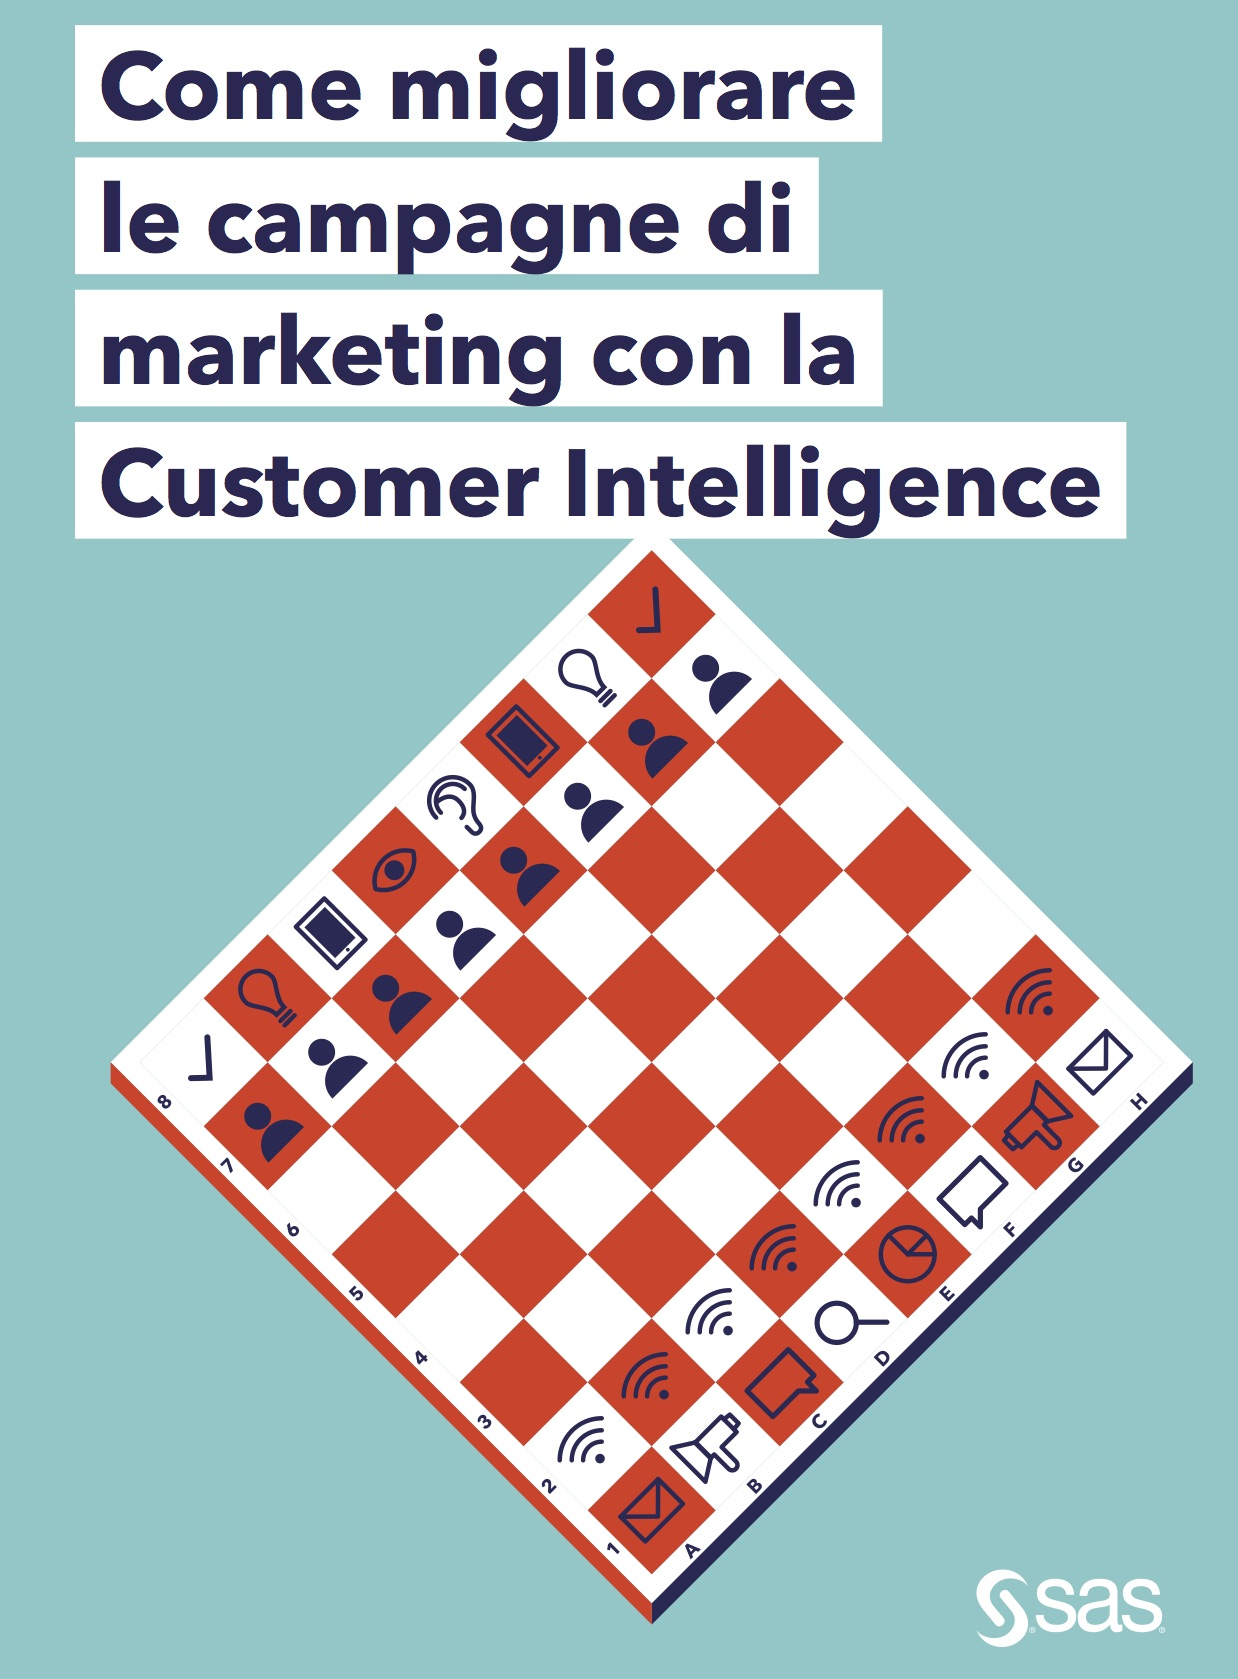 Customer Intelligence: scarica l'ebook SAS in anteprima